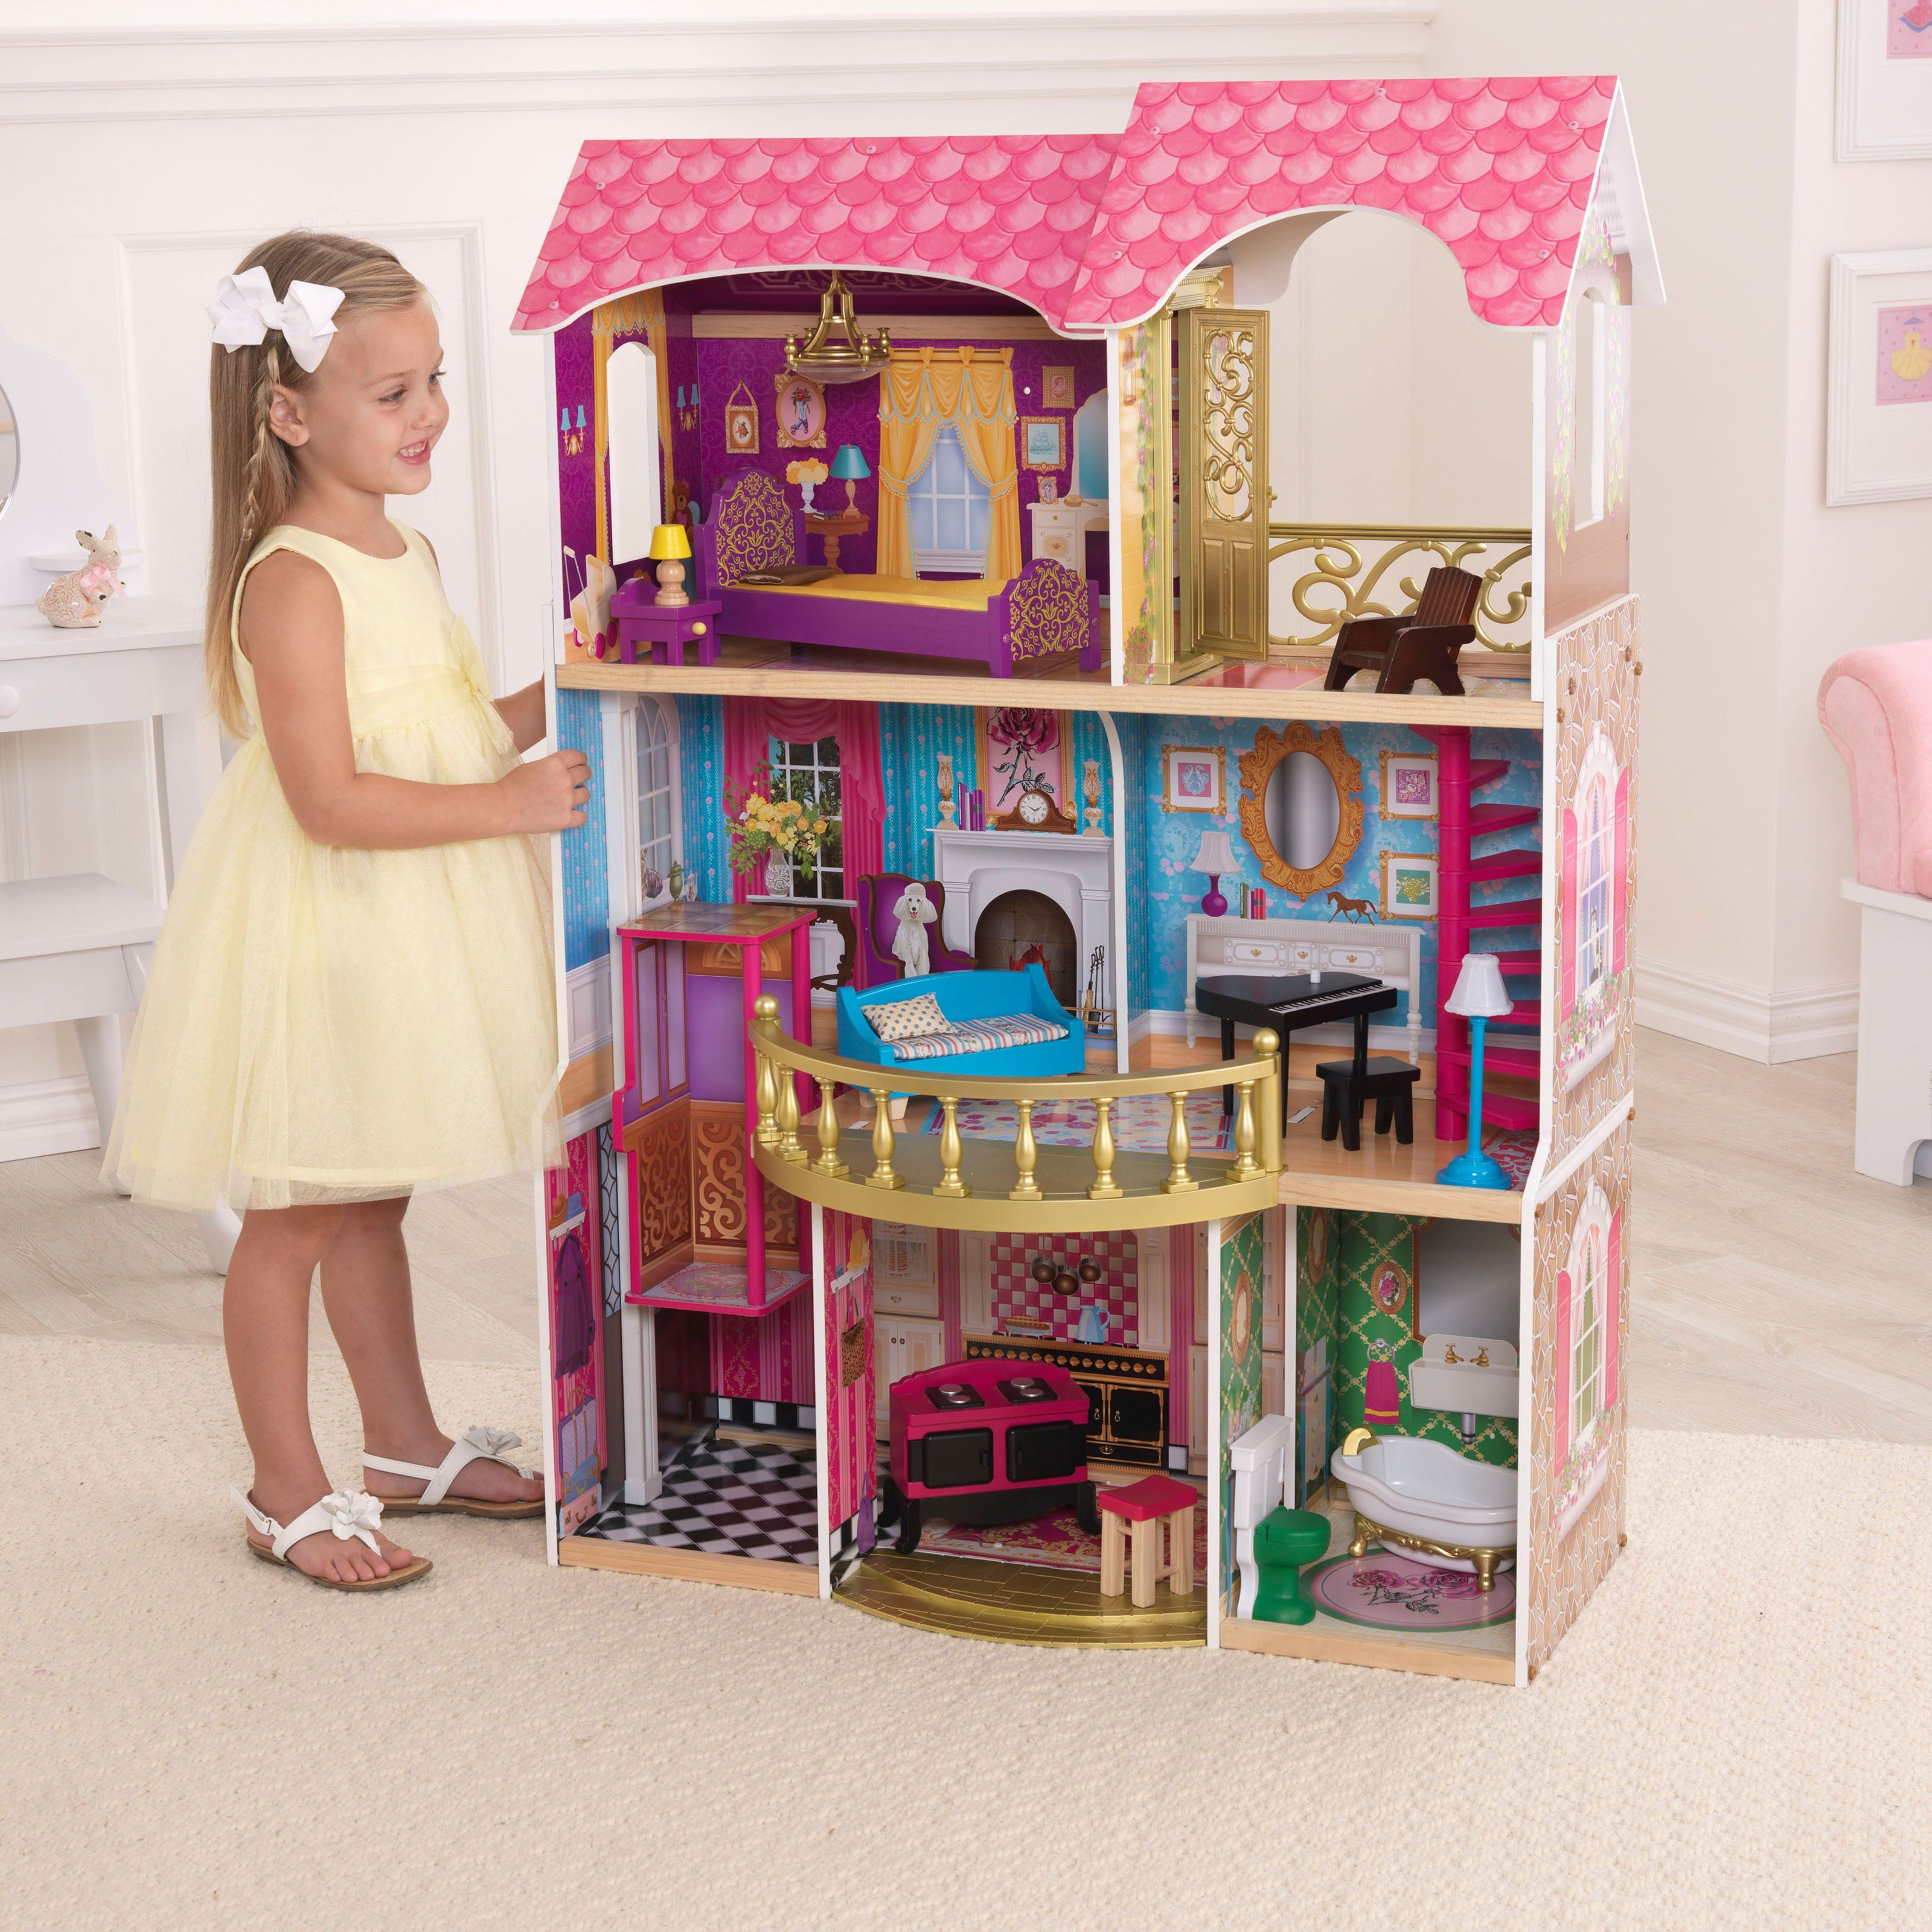 KidKraft Belmont Manor Dollhouse 65856 from hayneedlecom